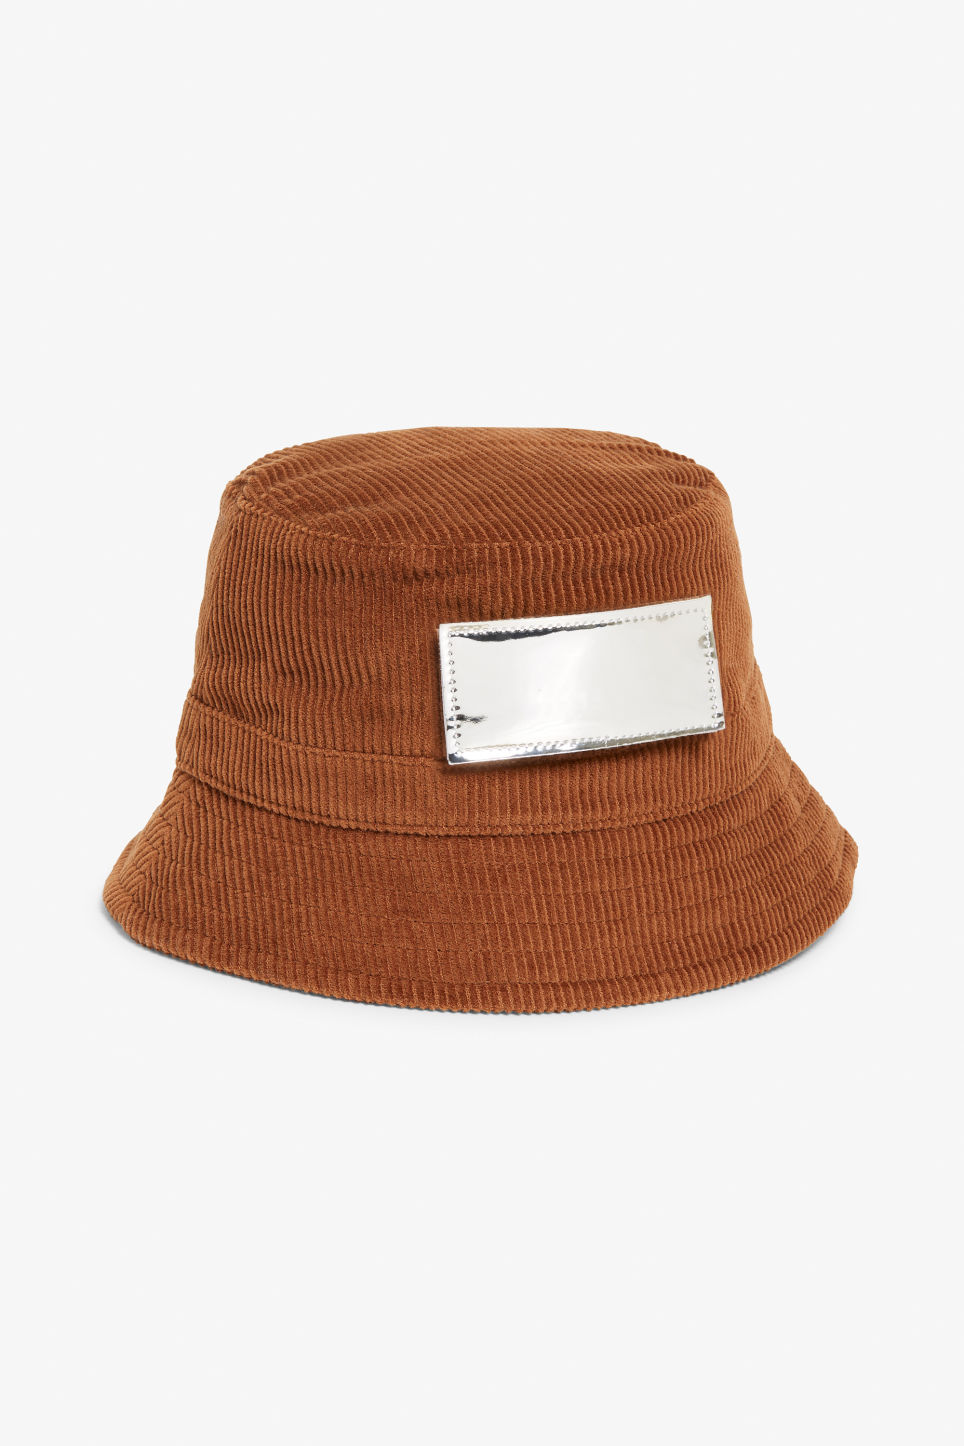 Detailed image of Monki corduroy hat in orange